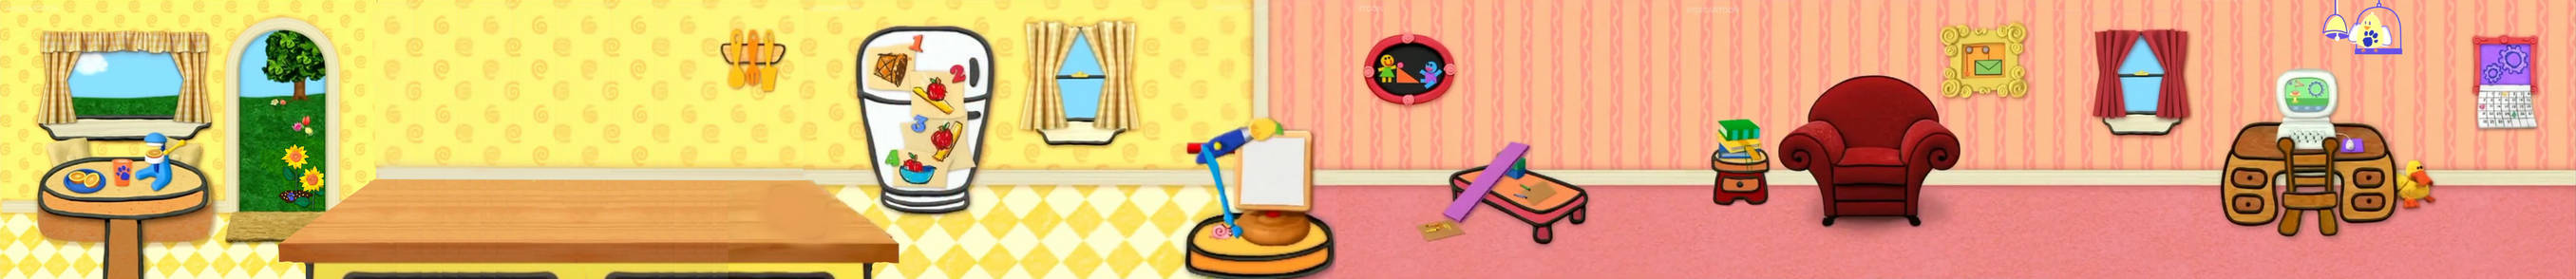 Blue's Clues Contraptions Background